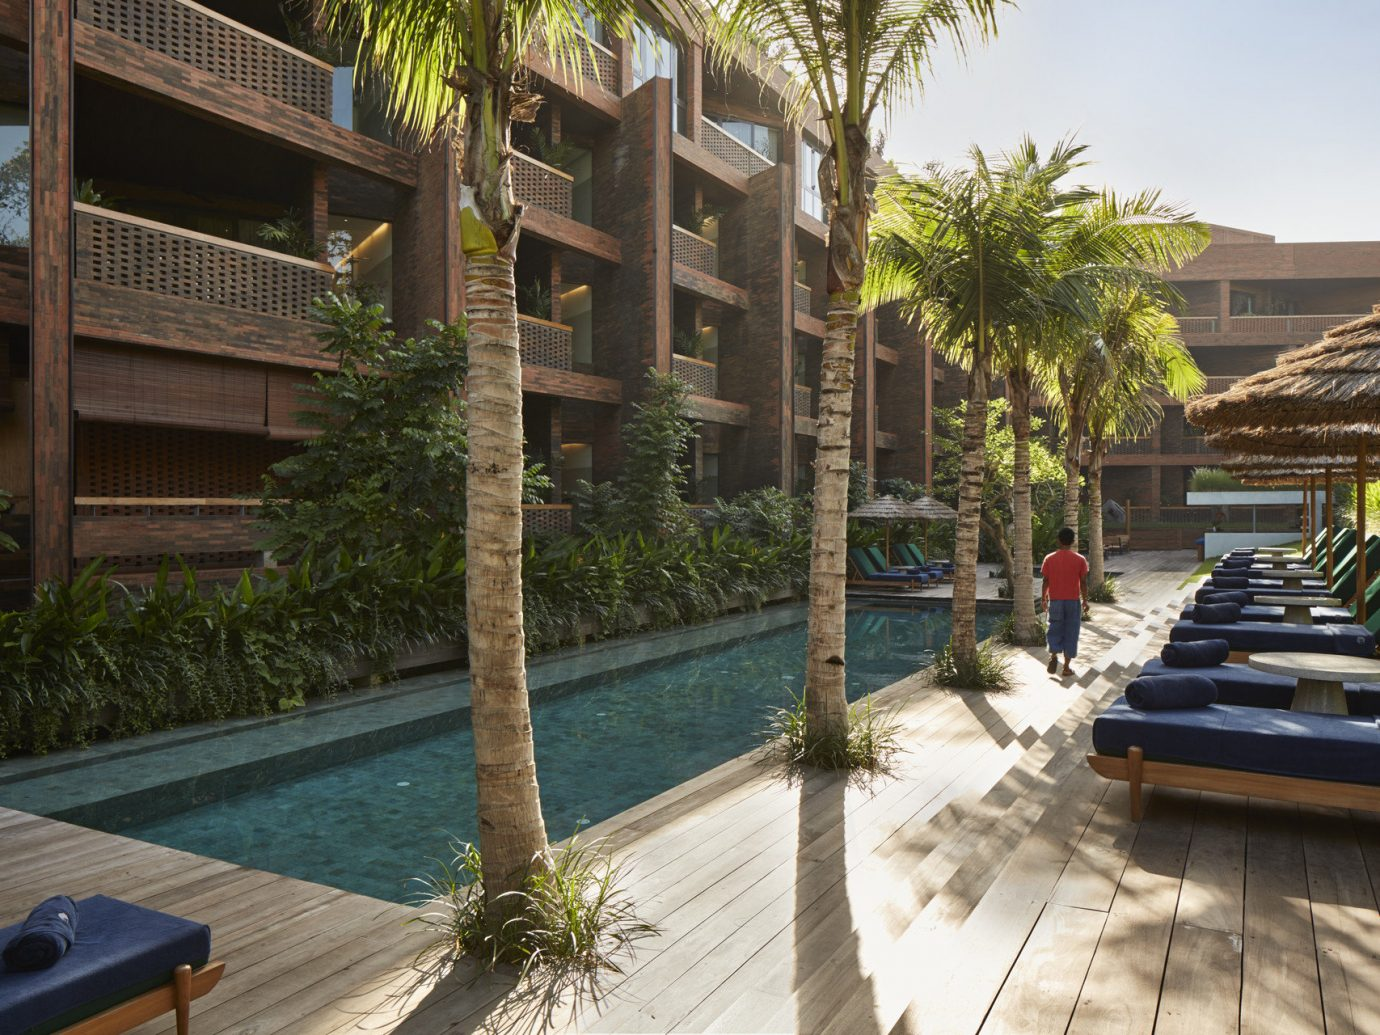 Health + Wellness Hotels outdoor tree property swimming pool Resort condominium estate vacation Villa real estate Courtyard backyard home mansion outdoor structure stone